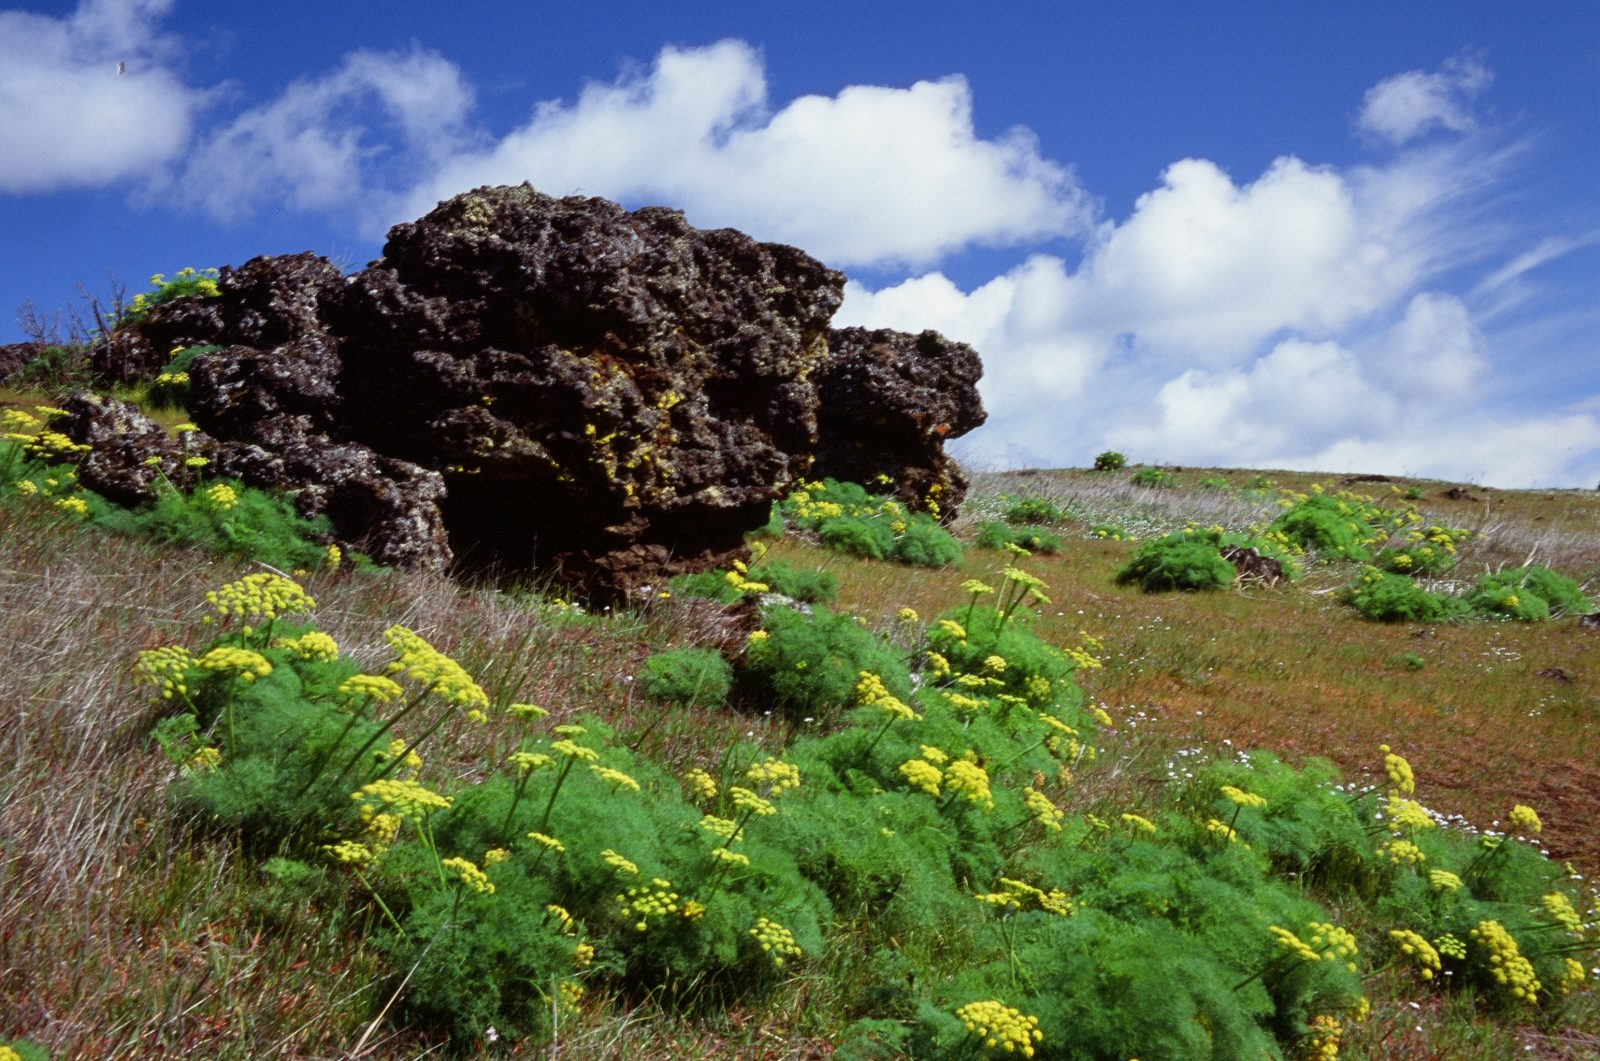 Lomatium and Columbia River basalt